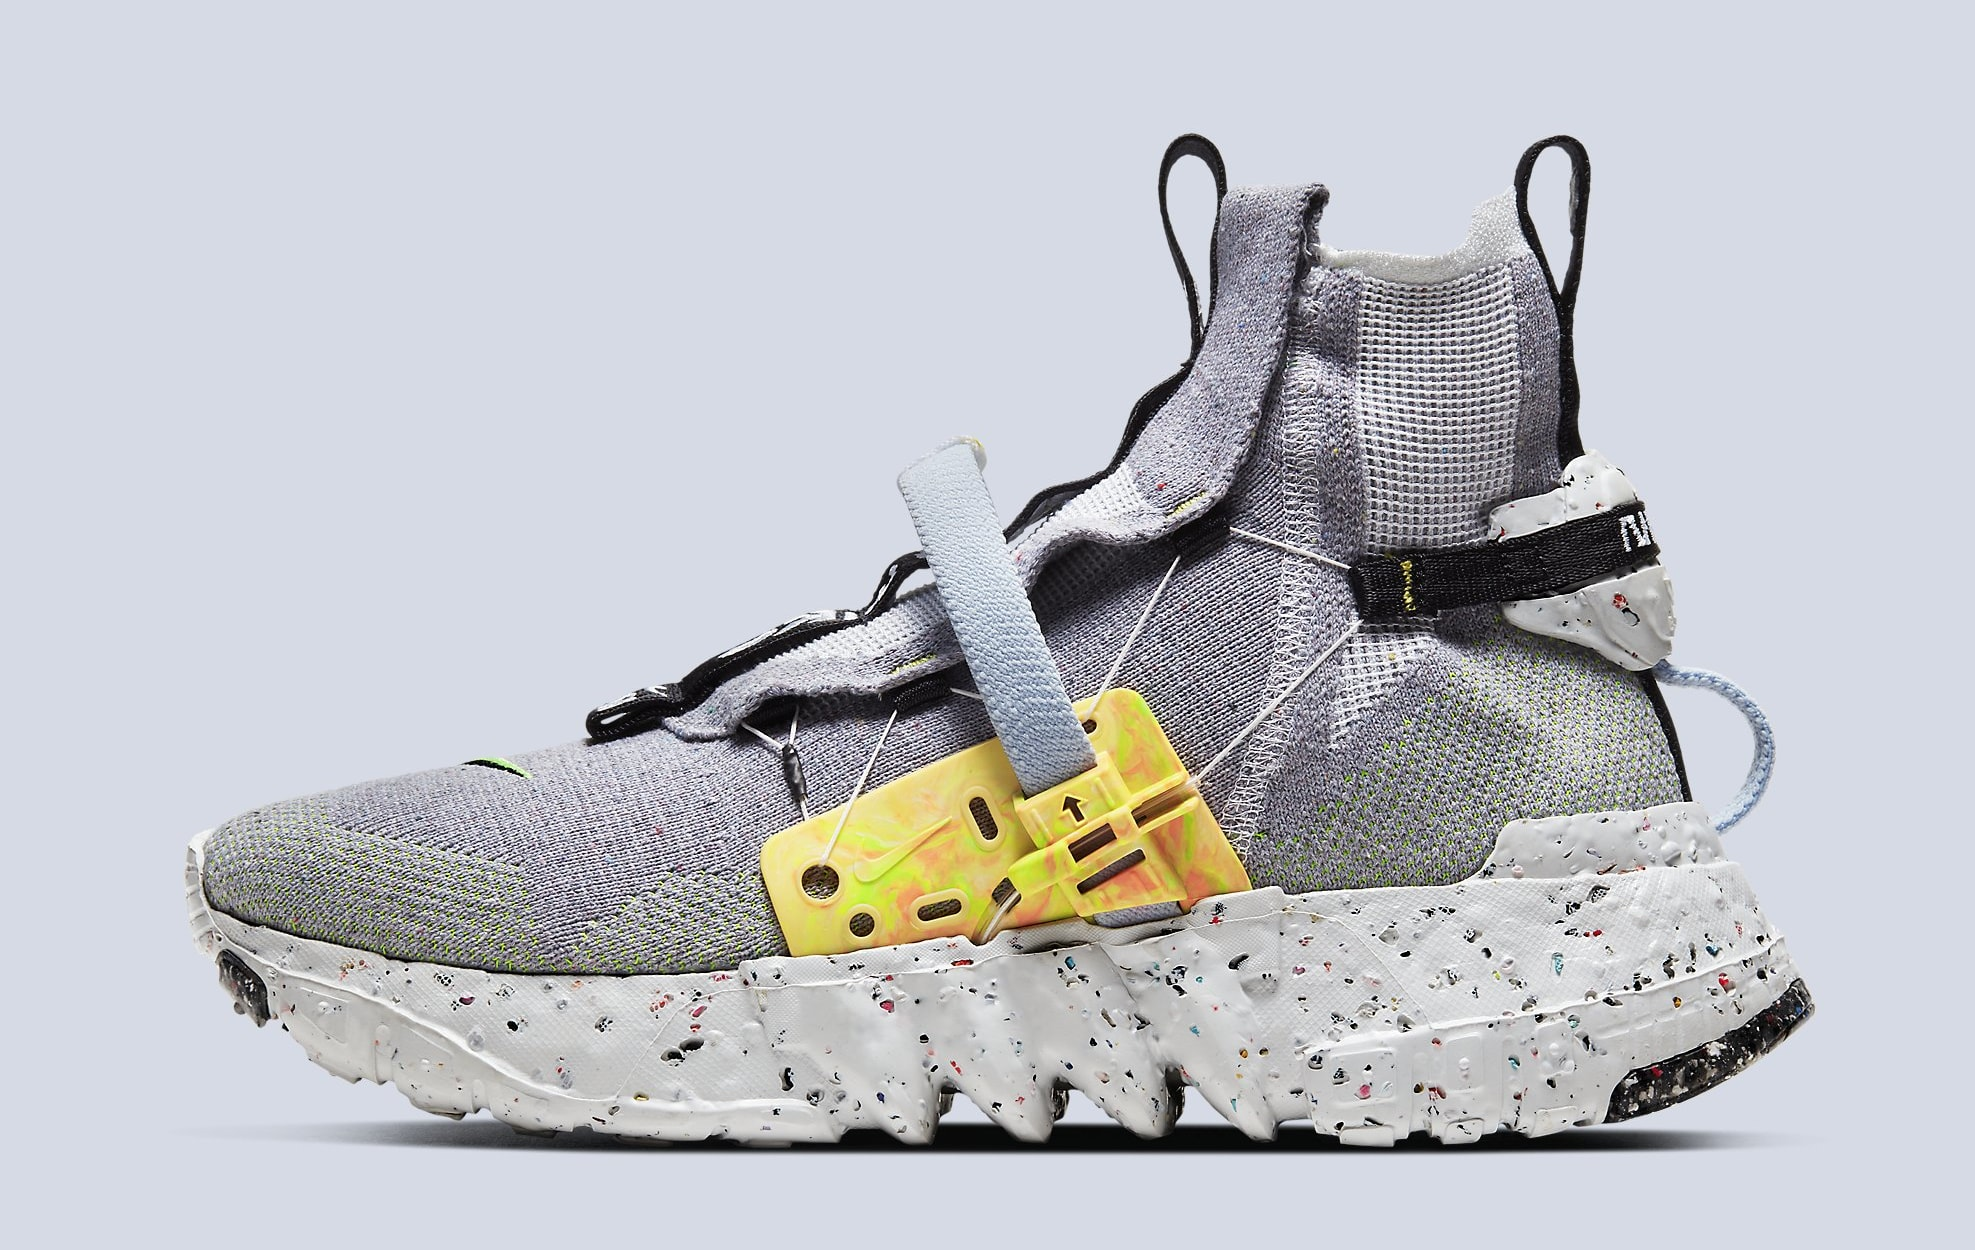 Nike Space Hippie 03 'Grey/Volt' CQ3989-002 Lateral